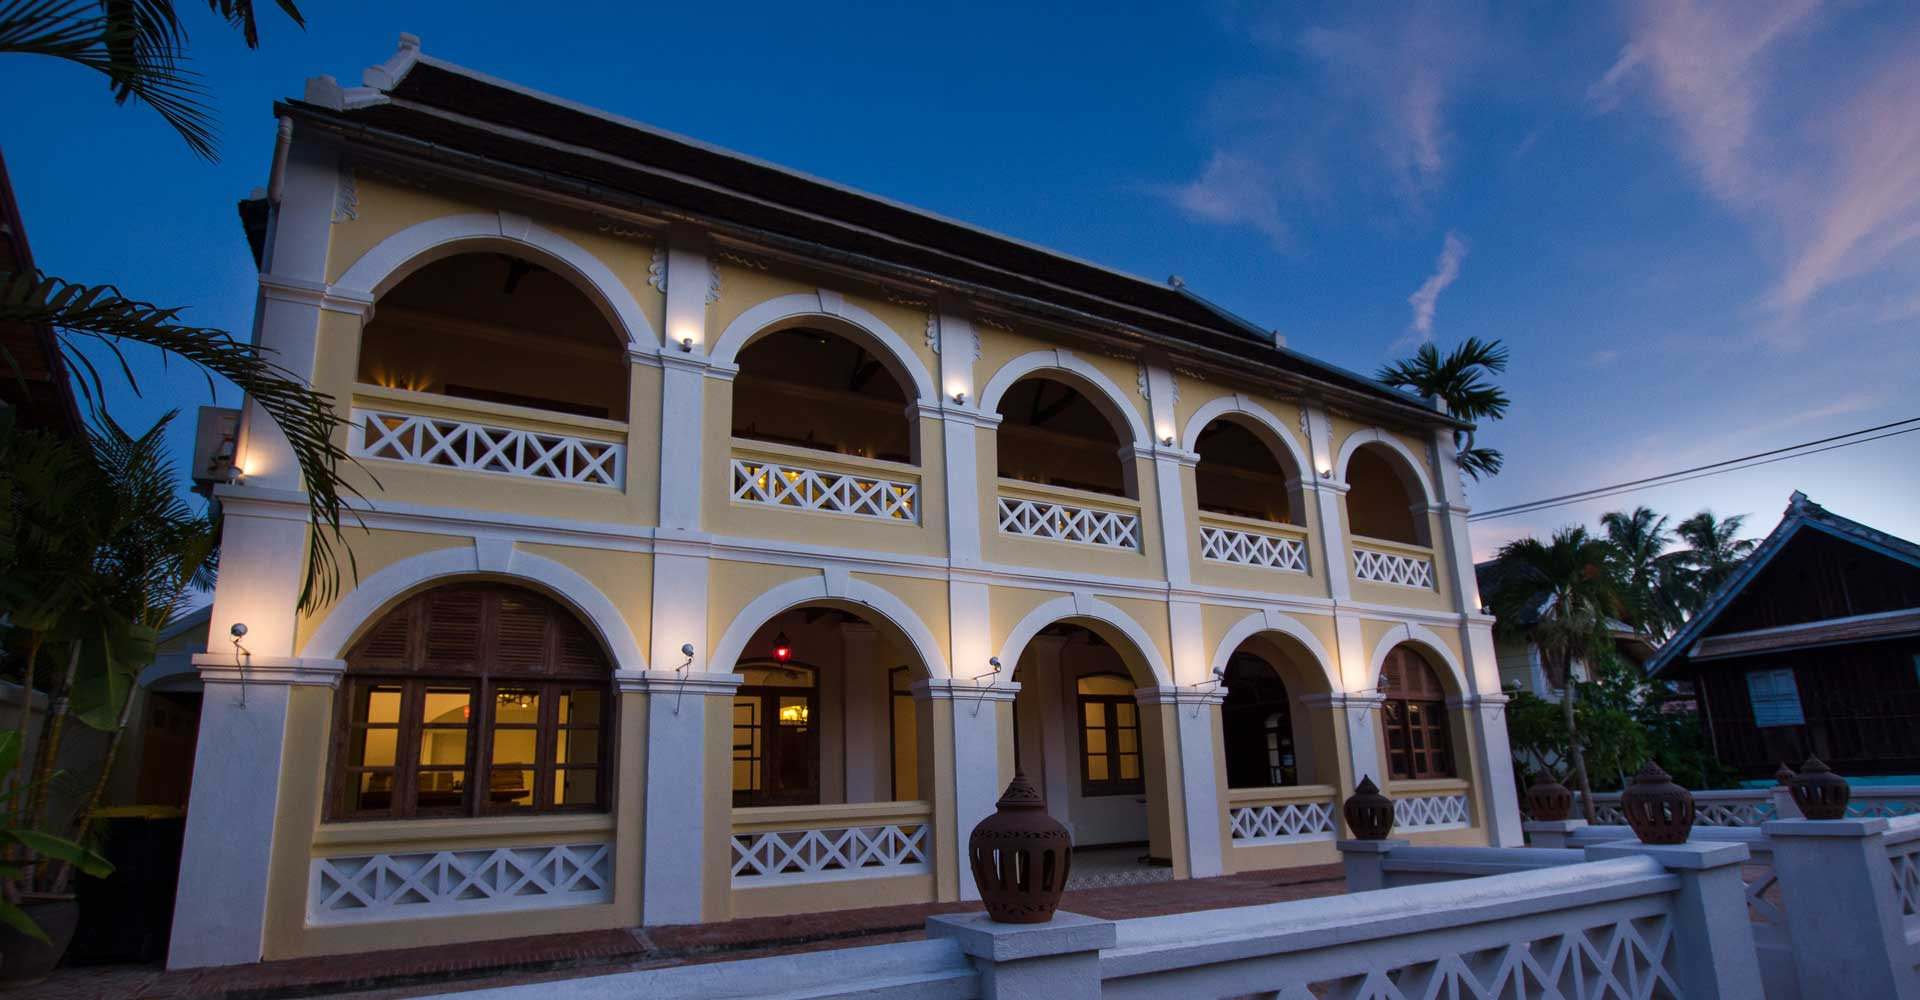 Discover luang prabang laos travel luxury boutique hotel for Luang prabang luxury hotels